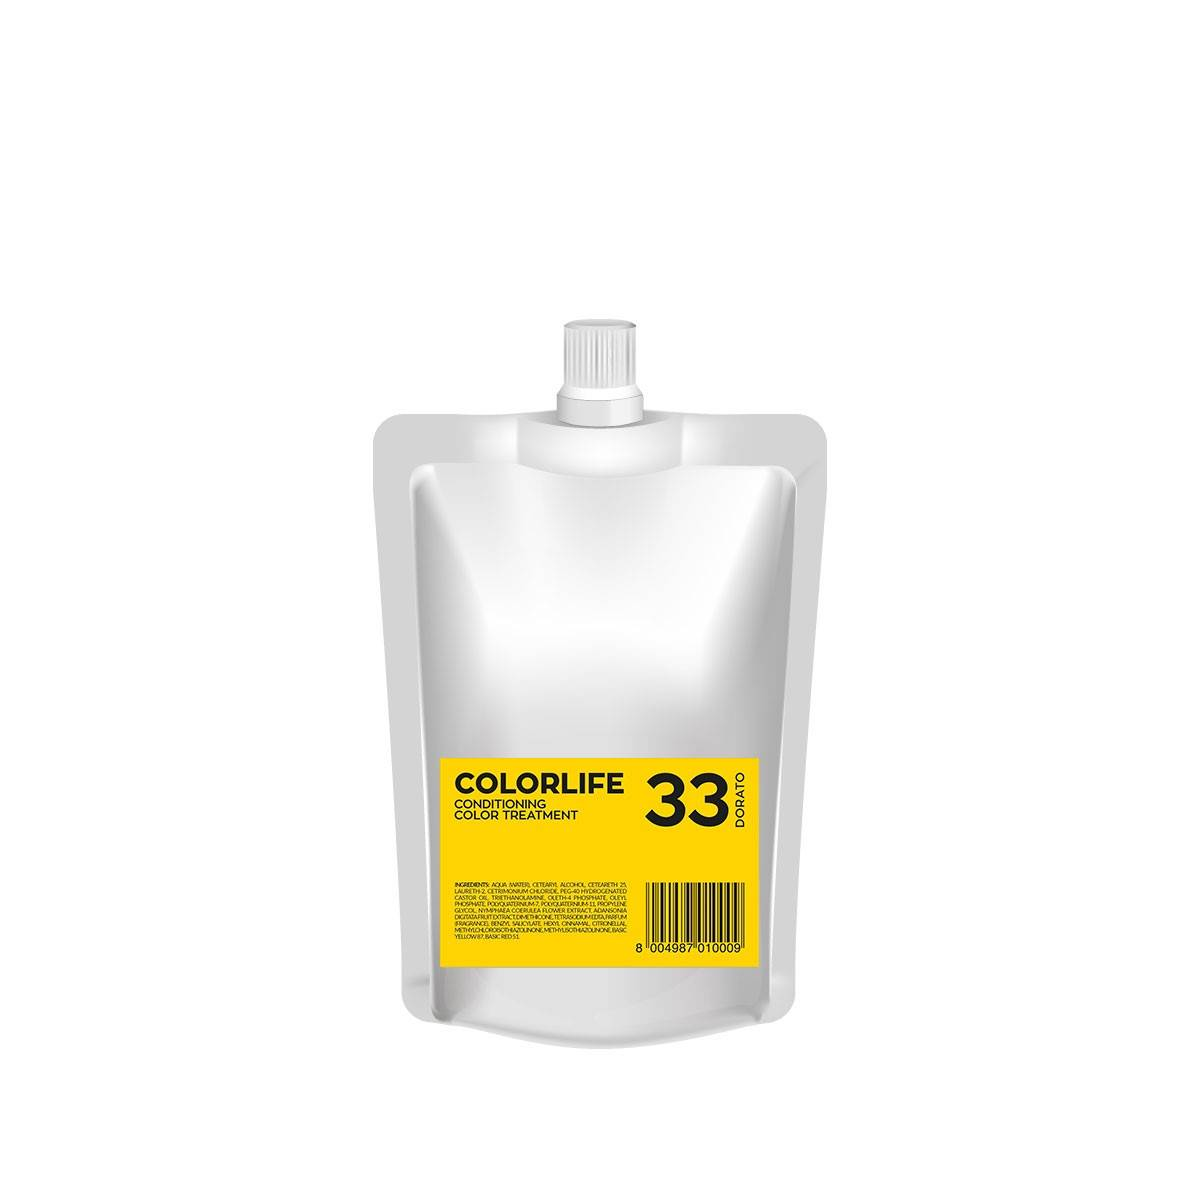 33 Colorlife 200ml Dorato Color Treatment